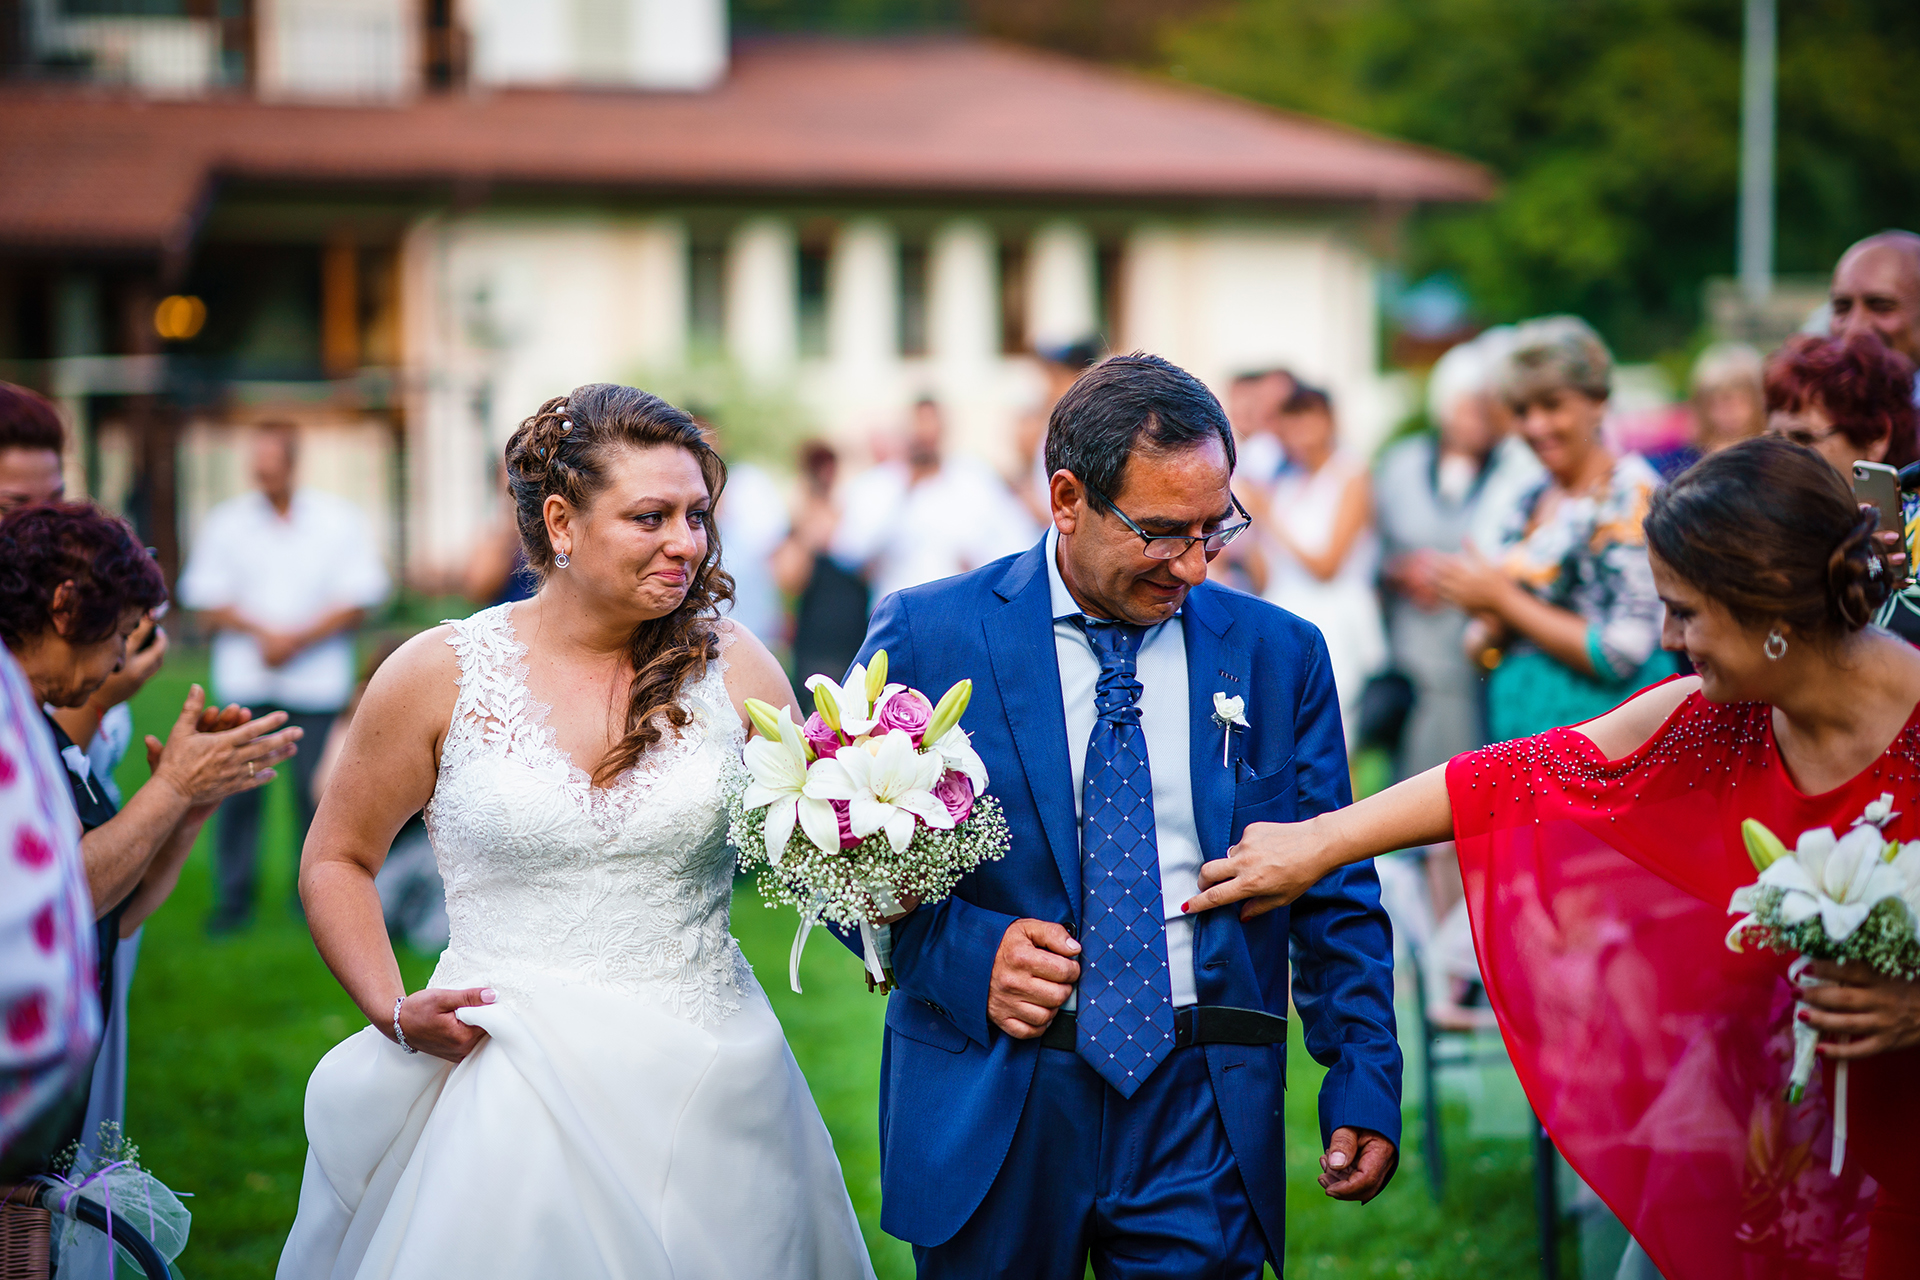 Bulgaria Elopement Photos | The bride, teary-eyed with joy, walks down the aisle with her father